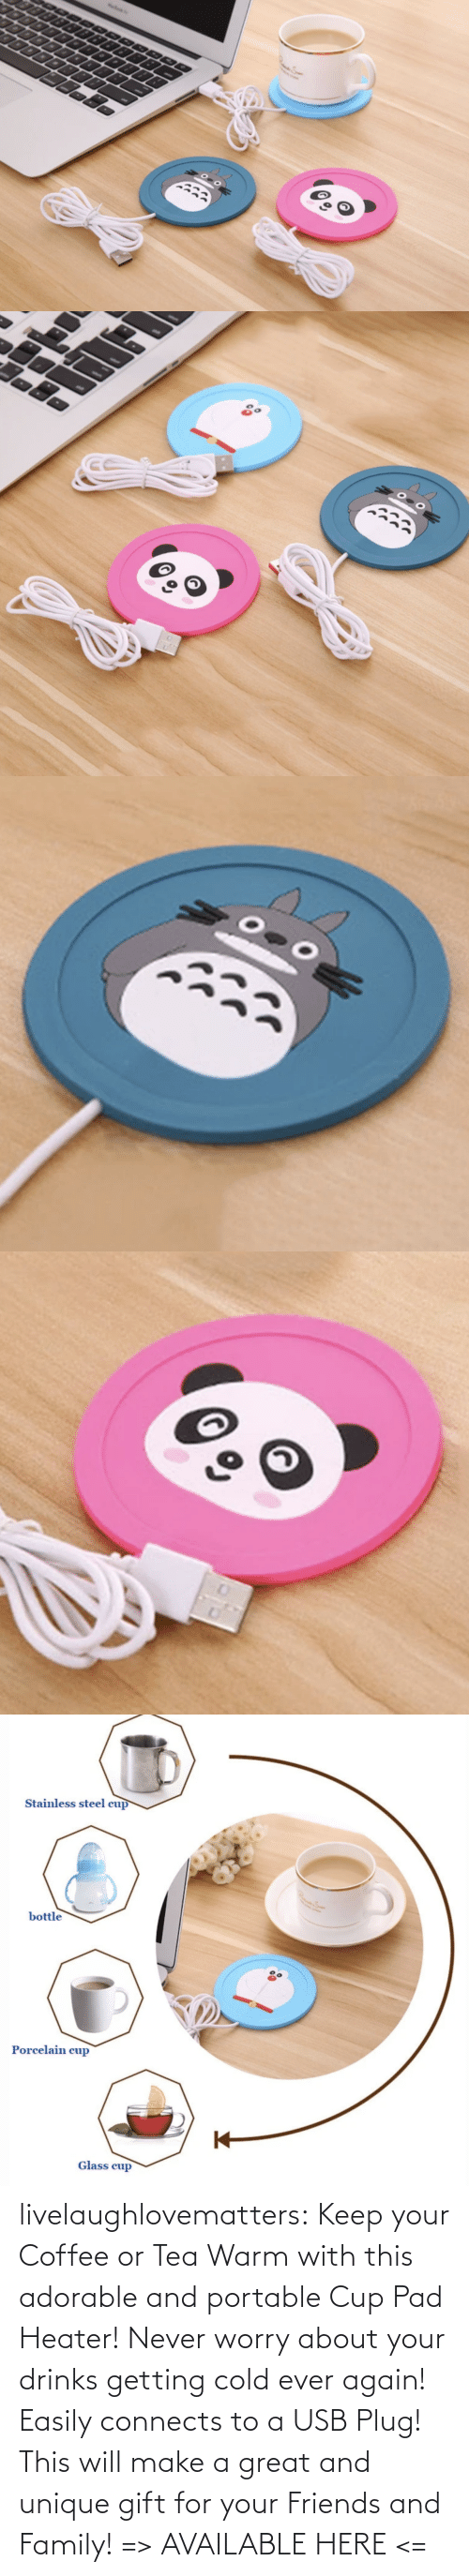 usb: livelaughlovematters: Keep your Coffee or Tea Warm with this adorable and portable Cup Pad Heater! Never worry about your drinks getting cold ever again! Easily connects to a USB Plug! This will make a great and unique gift for your Friends and Family! => AVAILABLE HERE <=